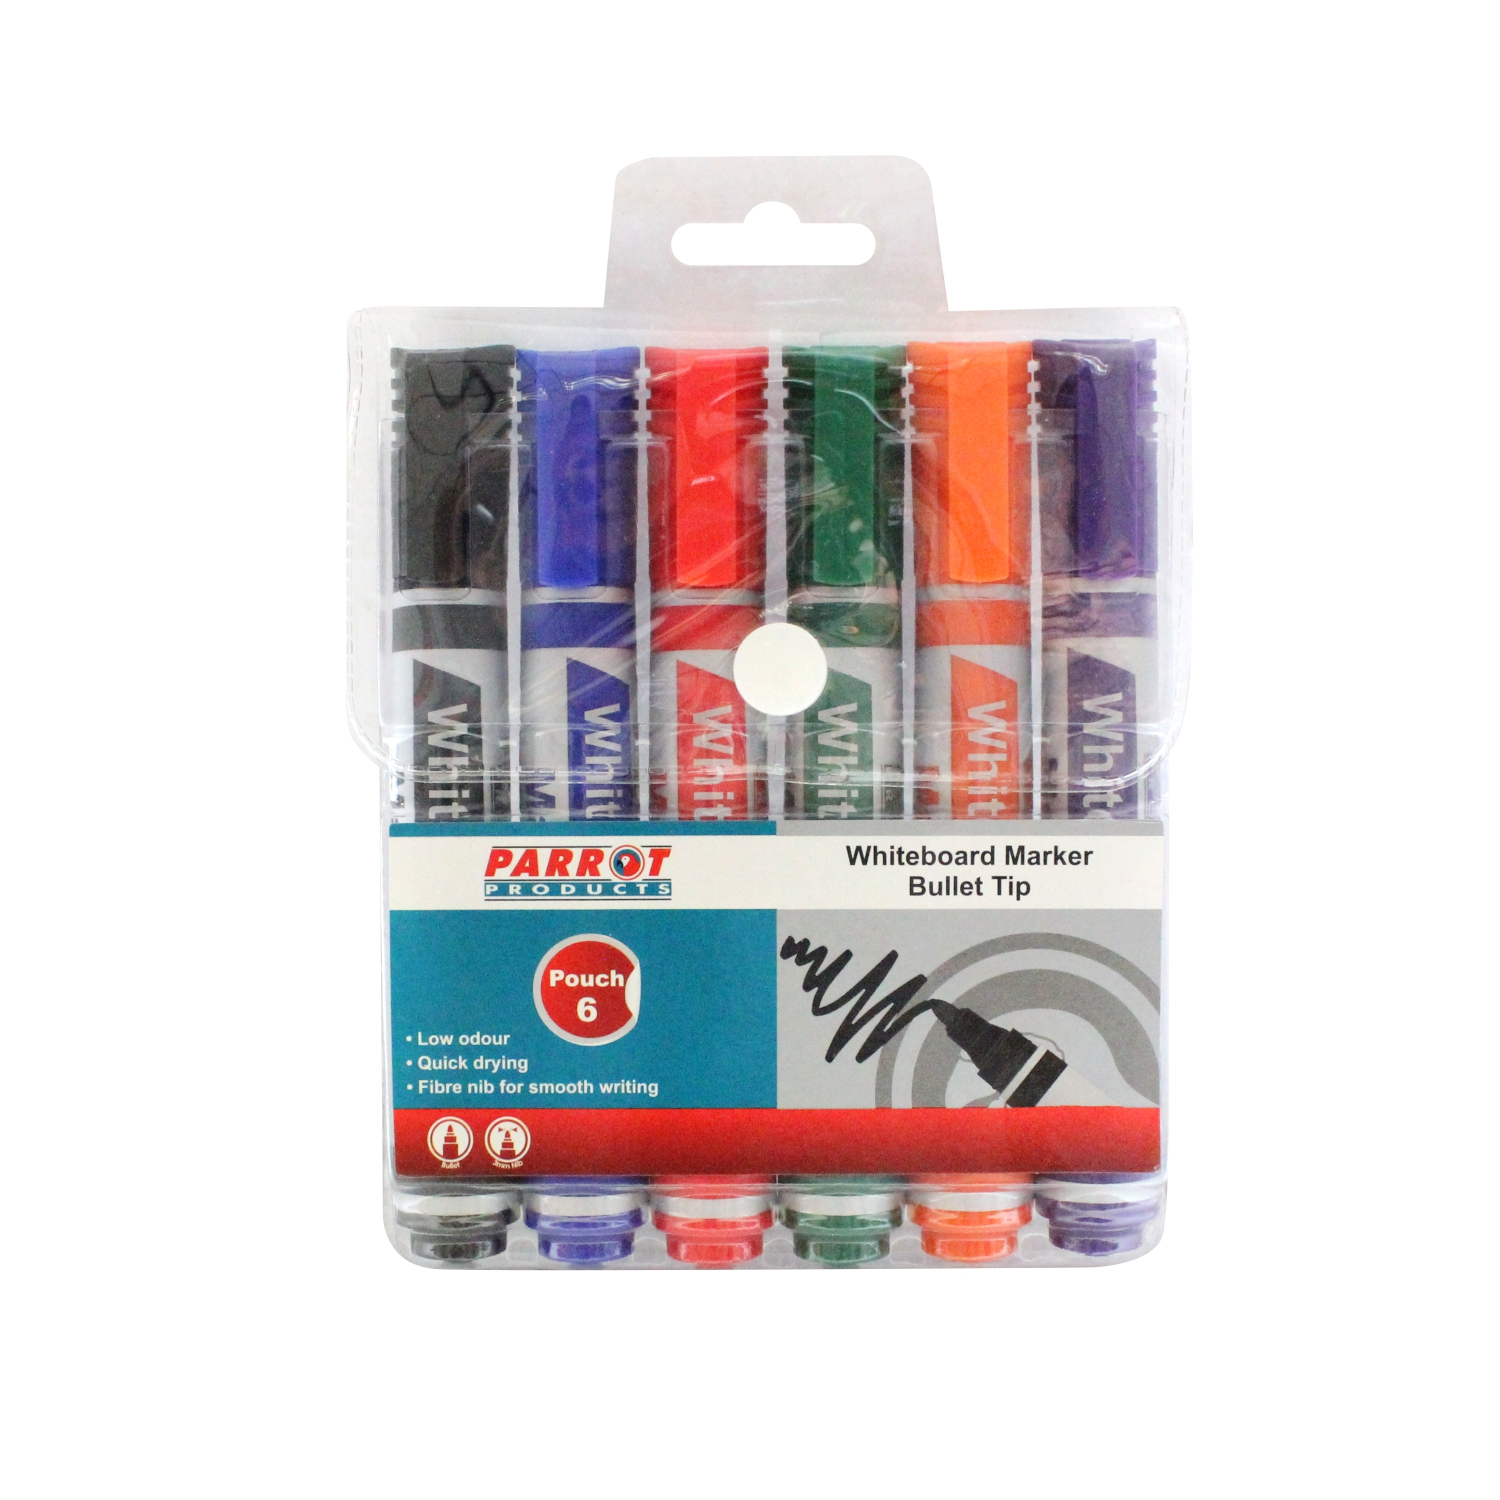 Whiteboard Markers (6 Markers, Bullet Tip, Pouch)